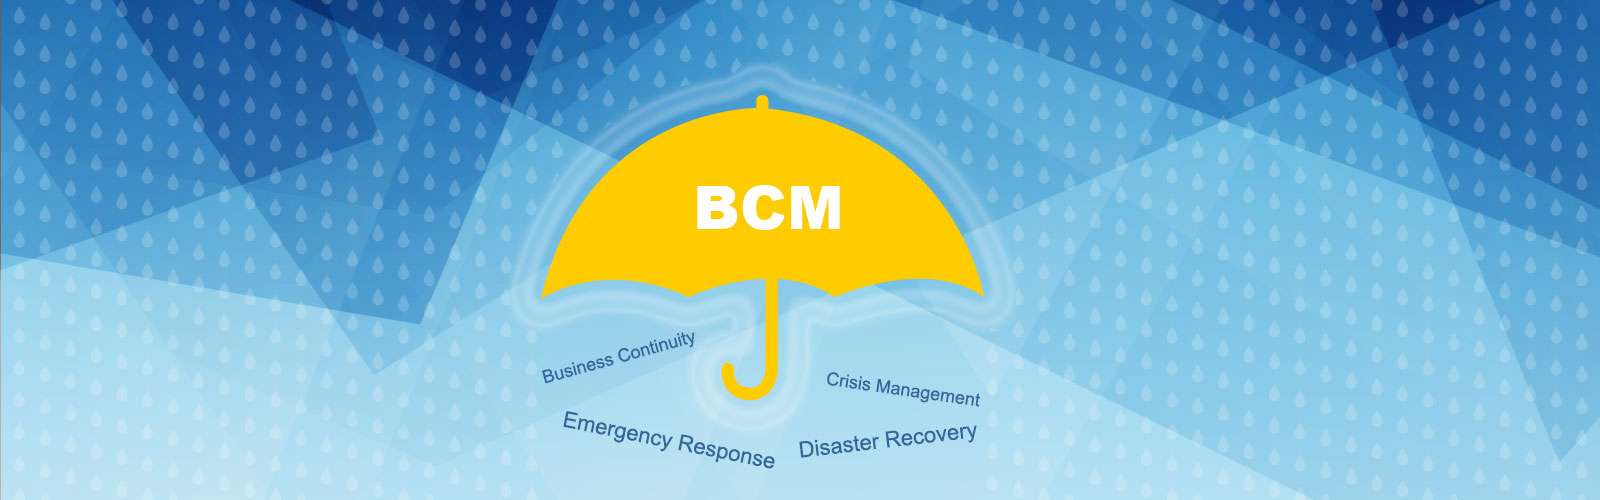 Professional Practices for BCM